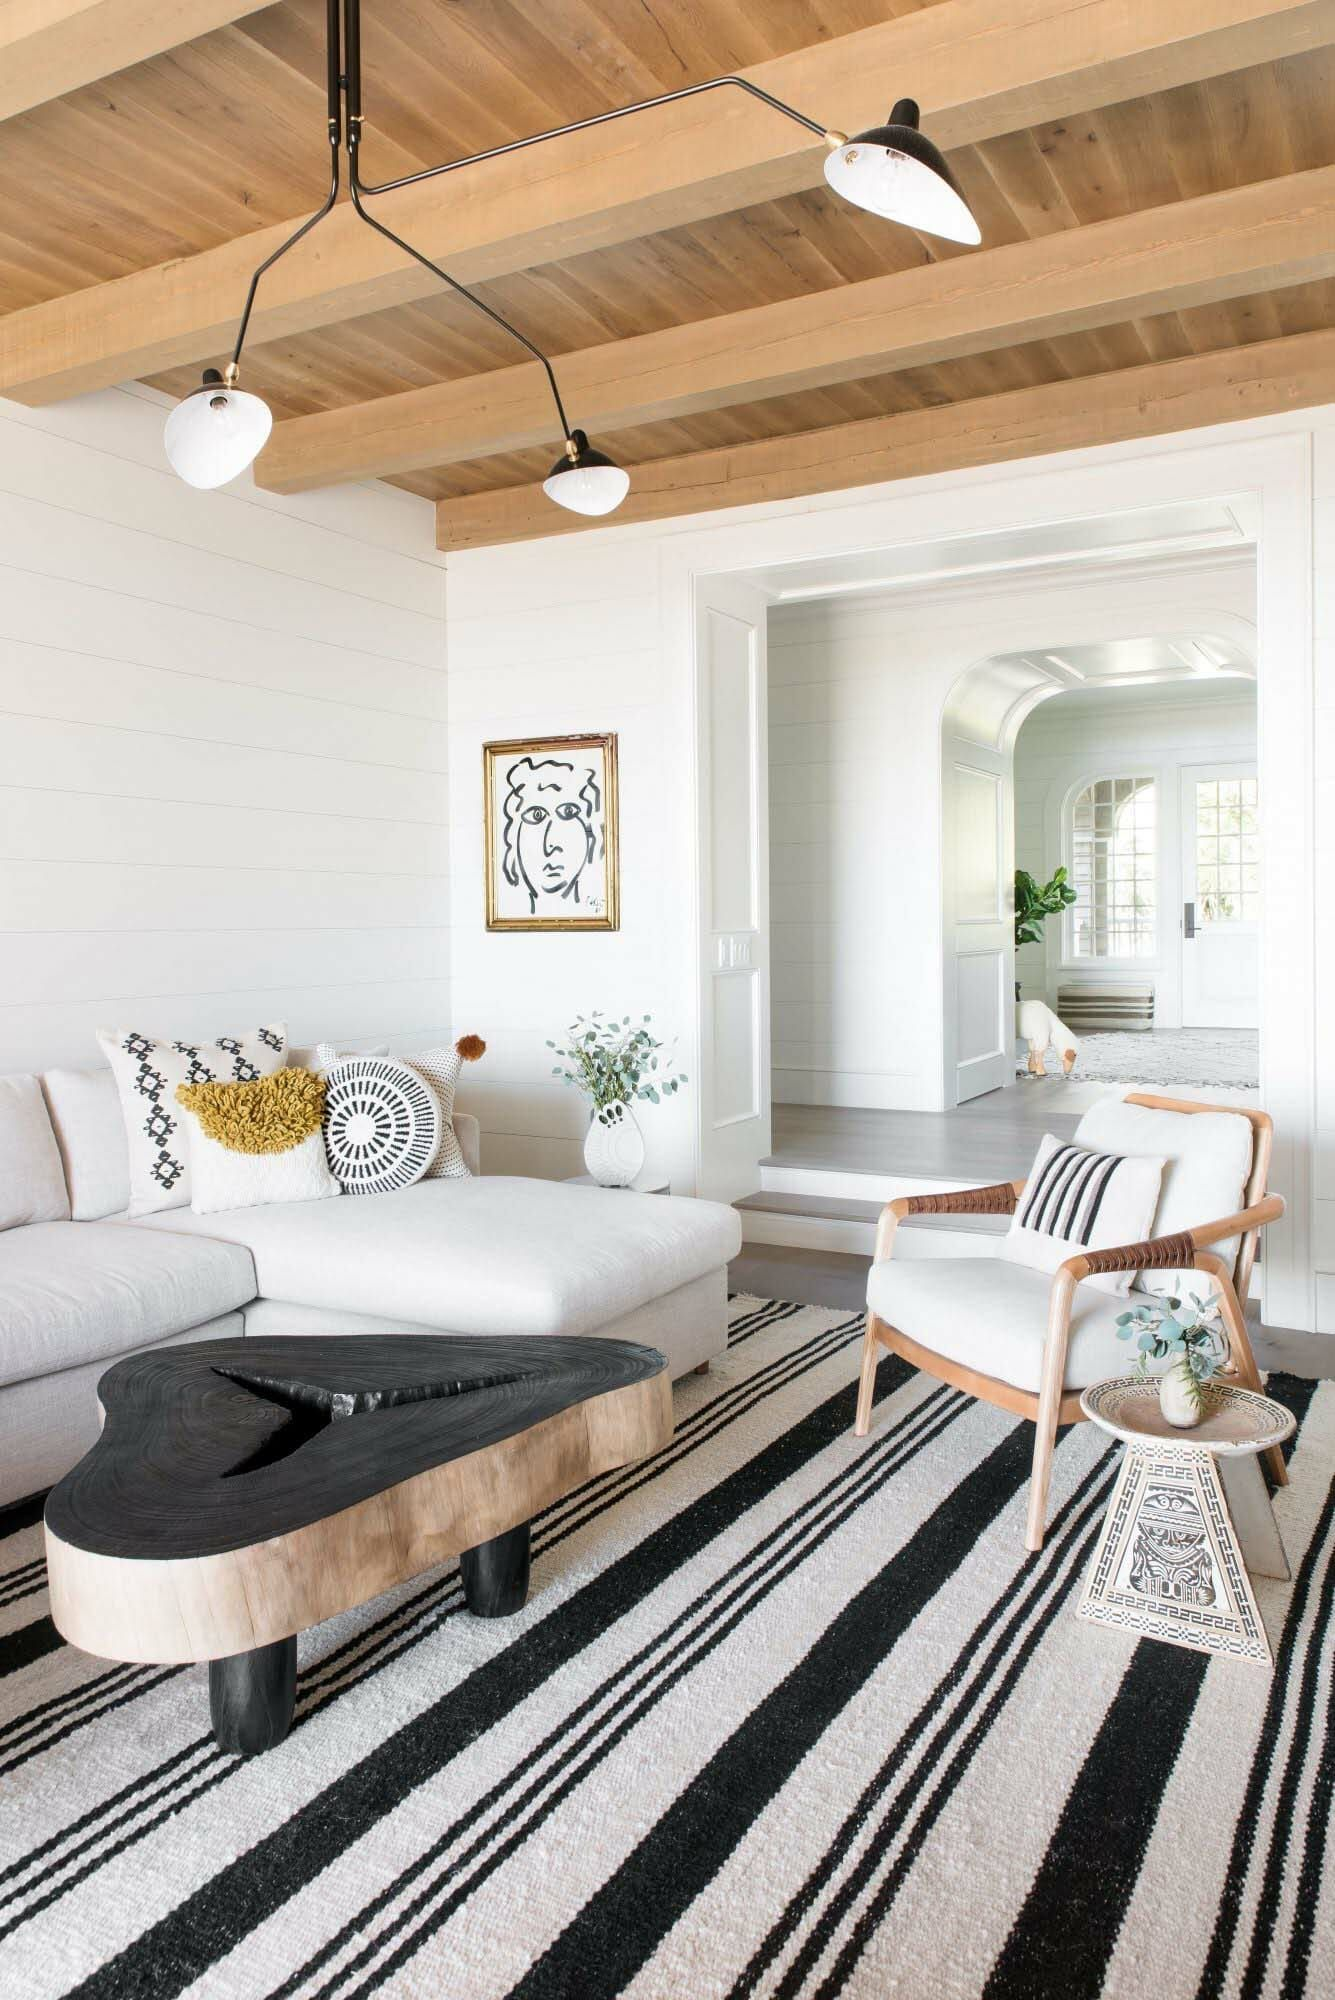 44 inspiring living room layouts ideas with sectional living room rh pinterest com